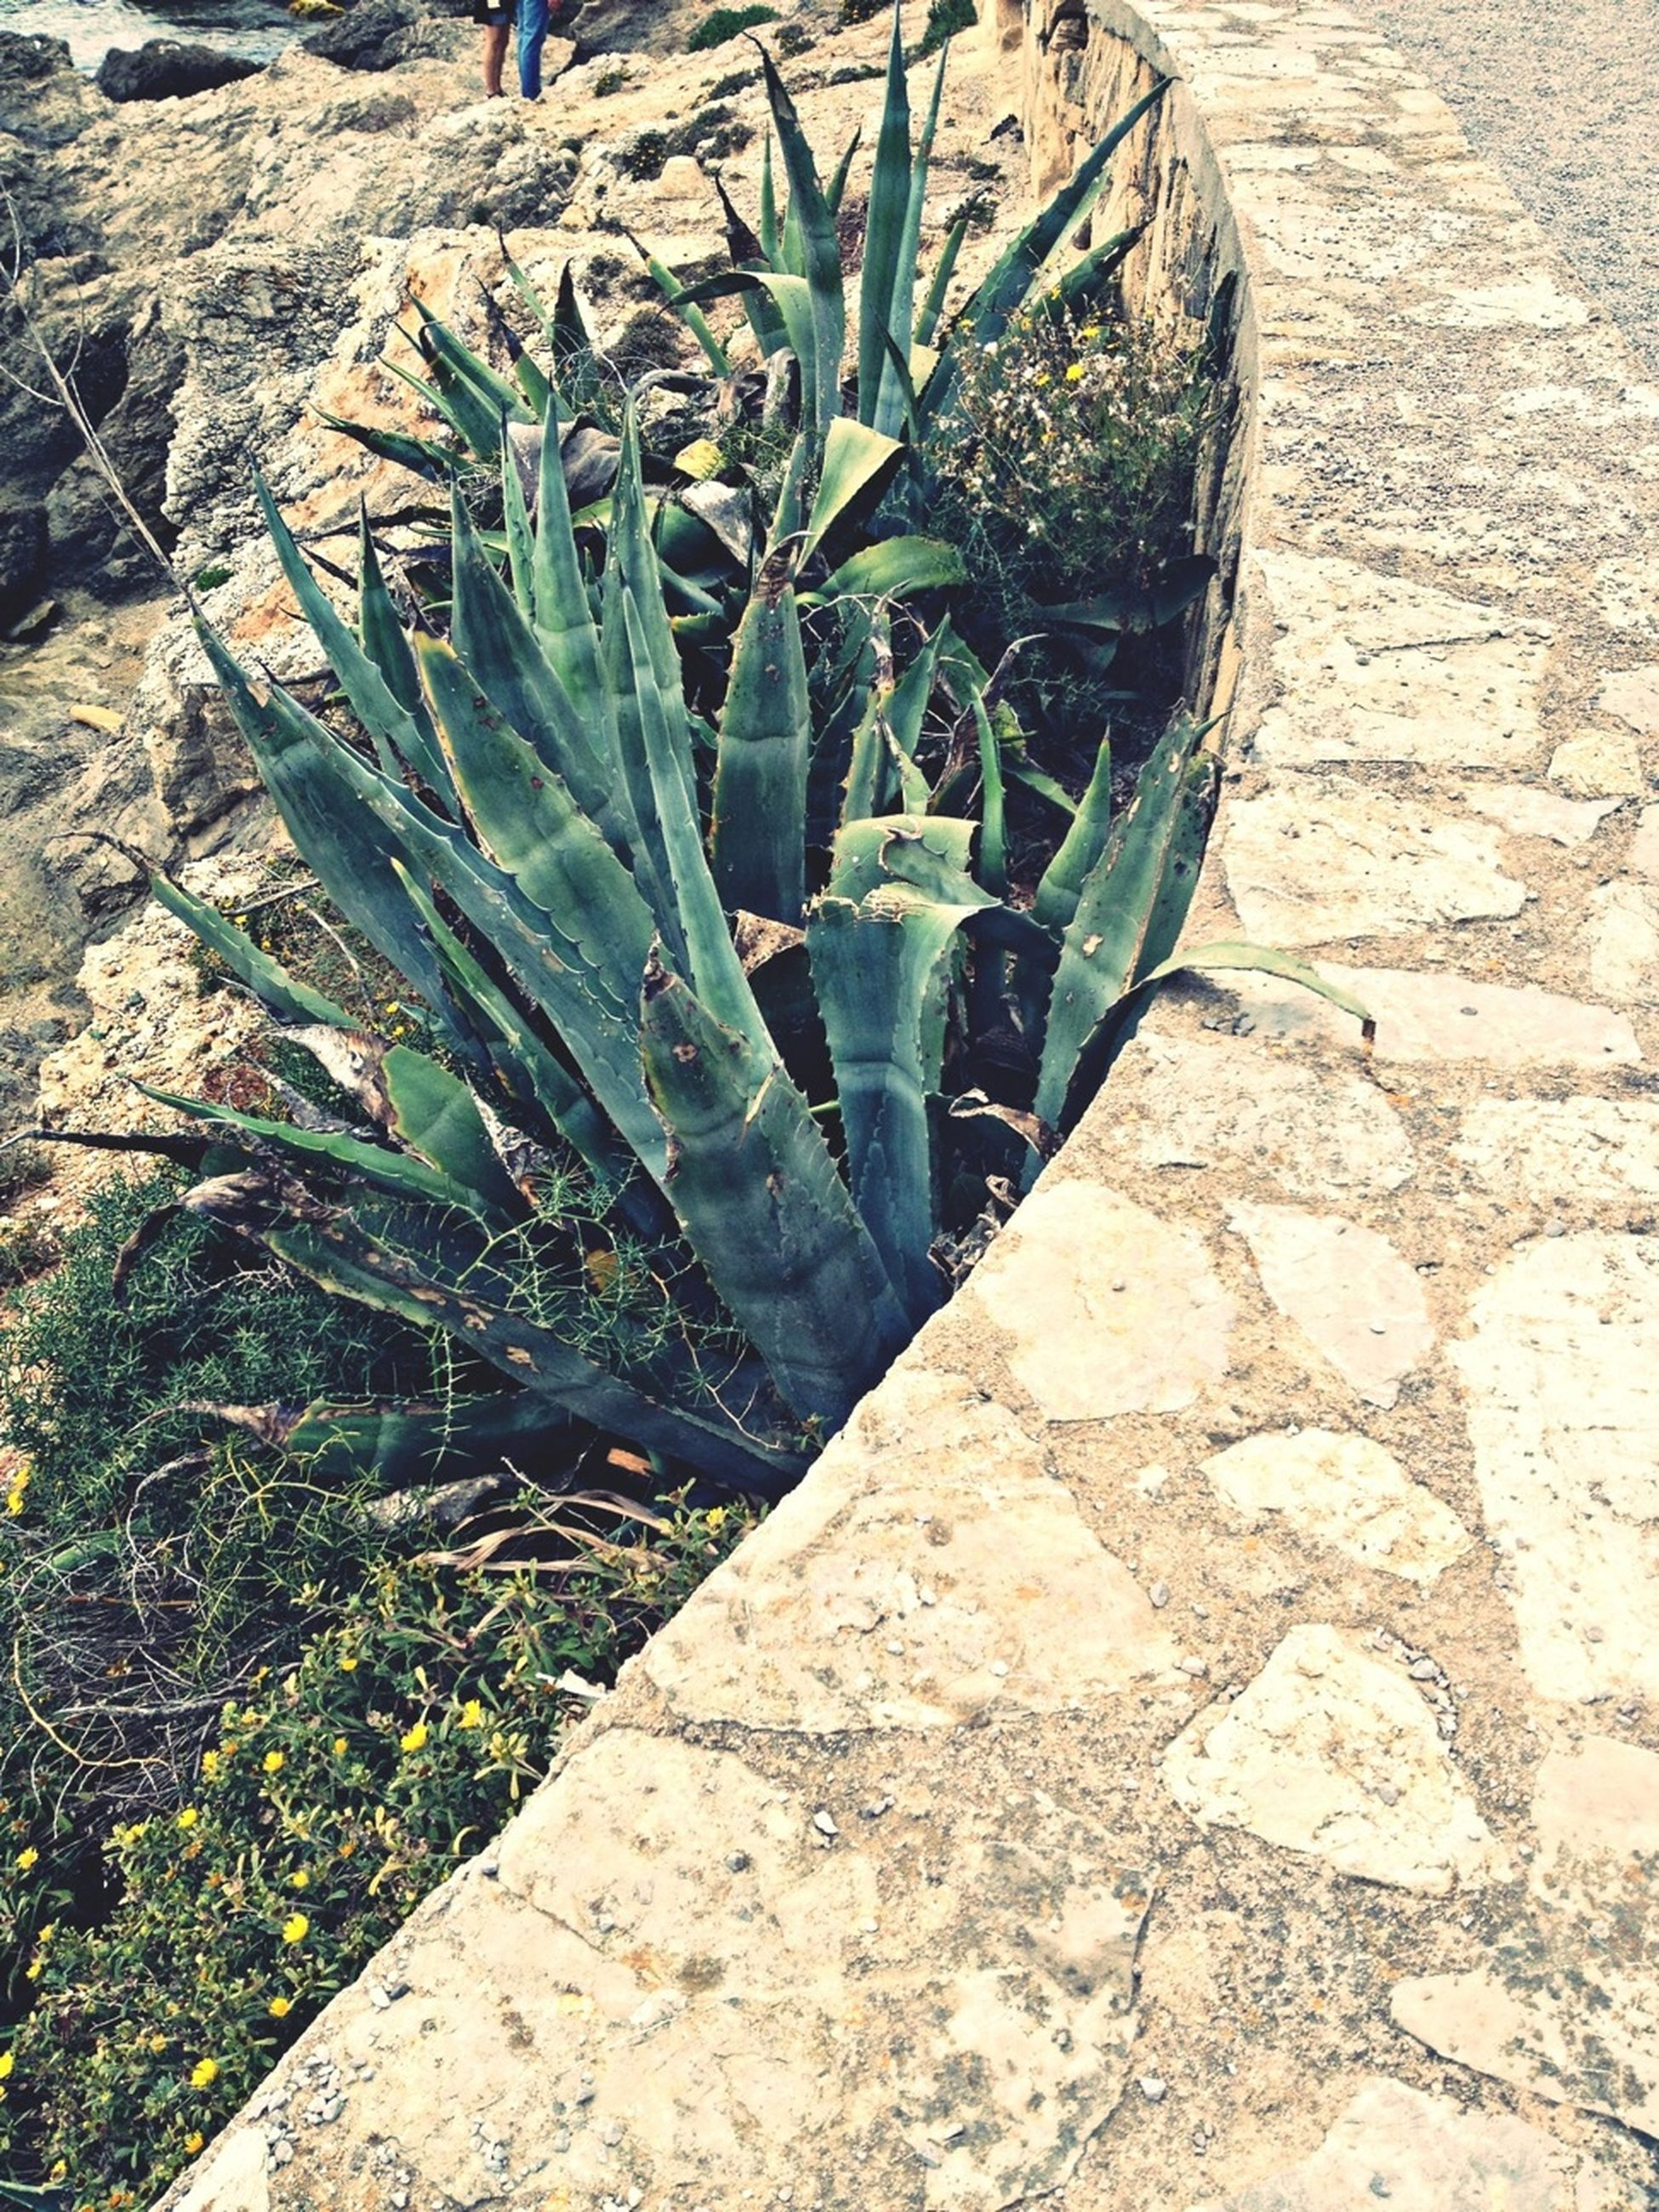 high angle view, plant, outdoors, sunlight, growth, day, close-up, nature, rock - object, no people, shadow, textured, stone - object, field, leaf, old, pattern, grass, ground, stone wall